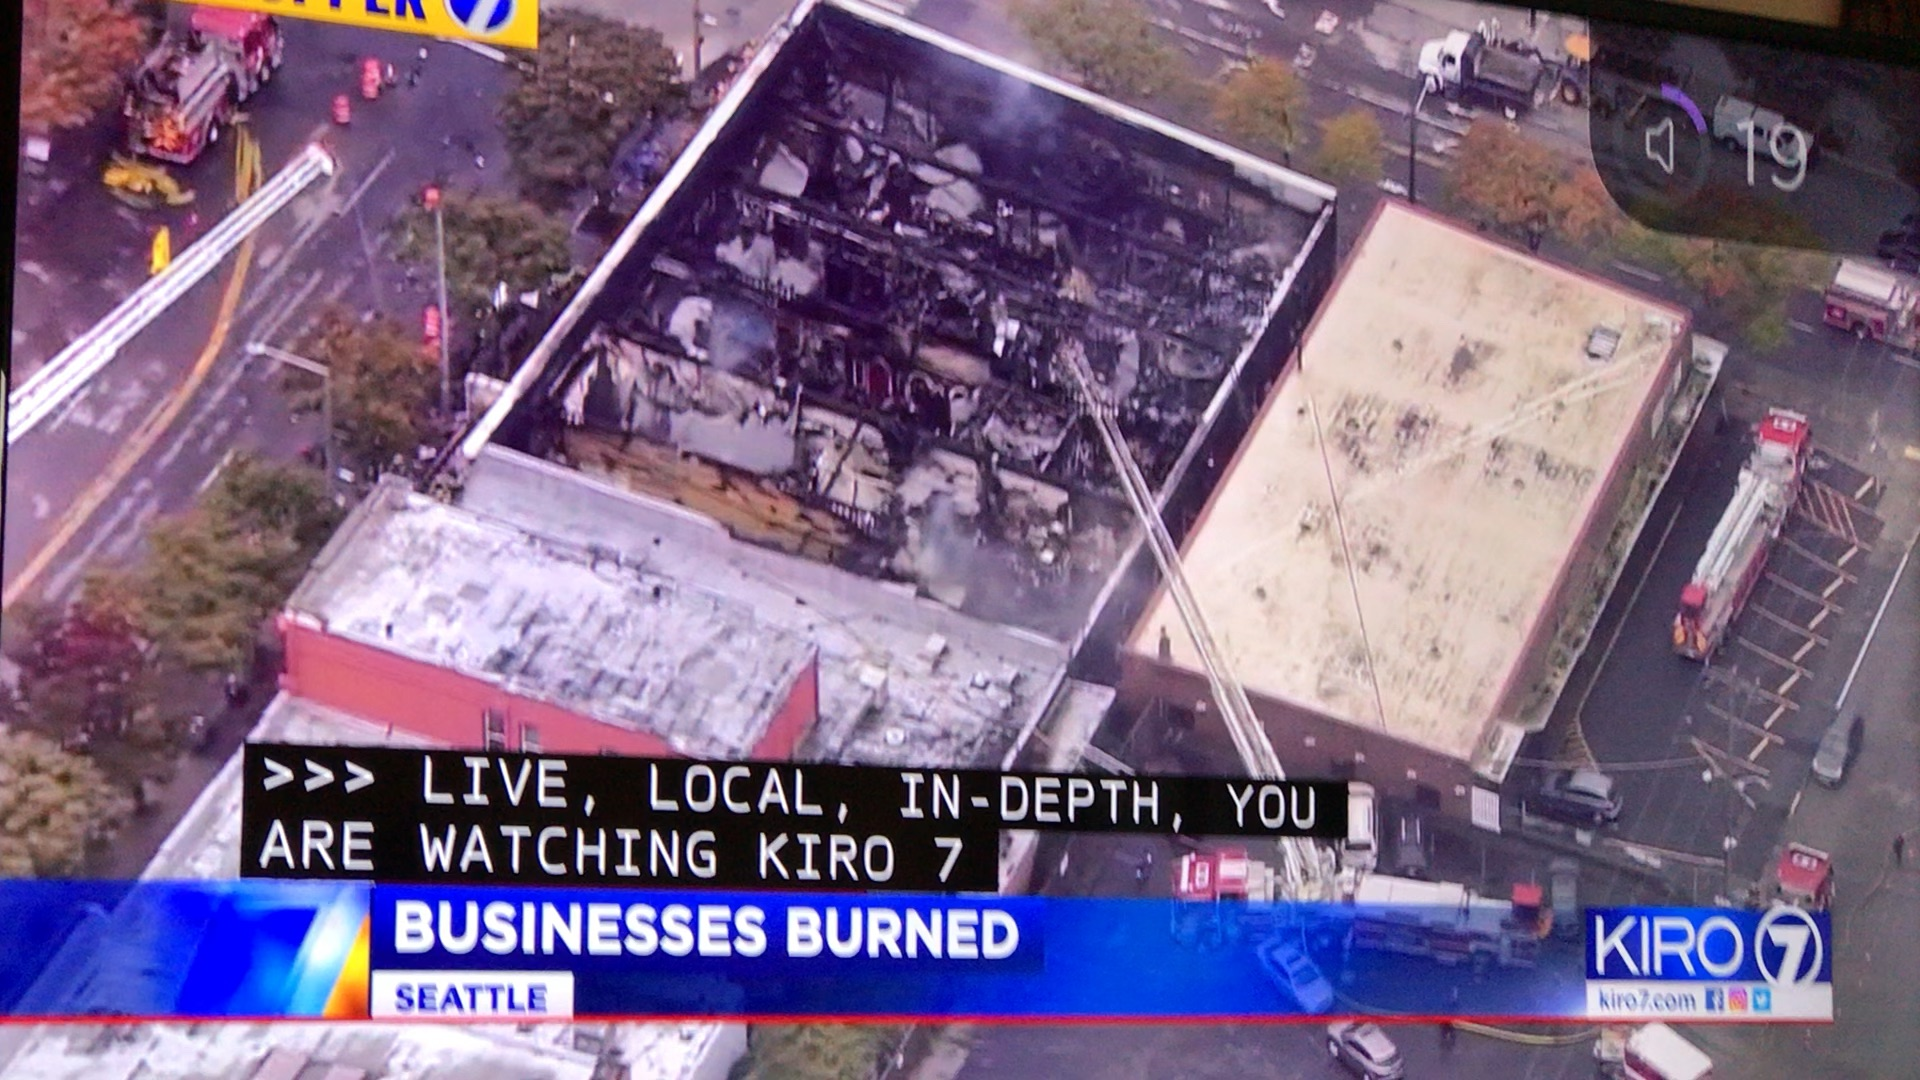 KIRO 7 Live from the scene